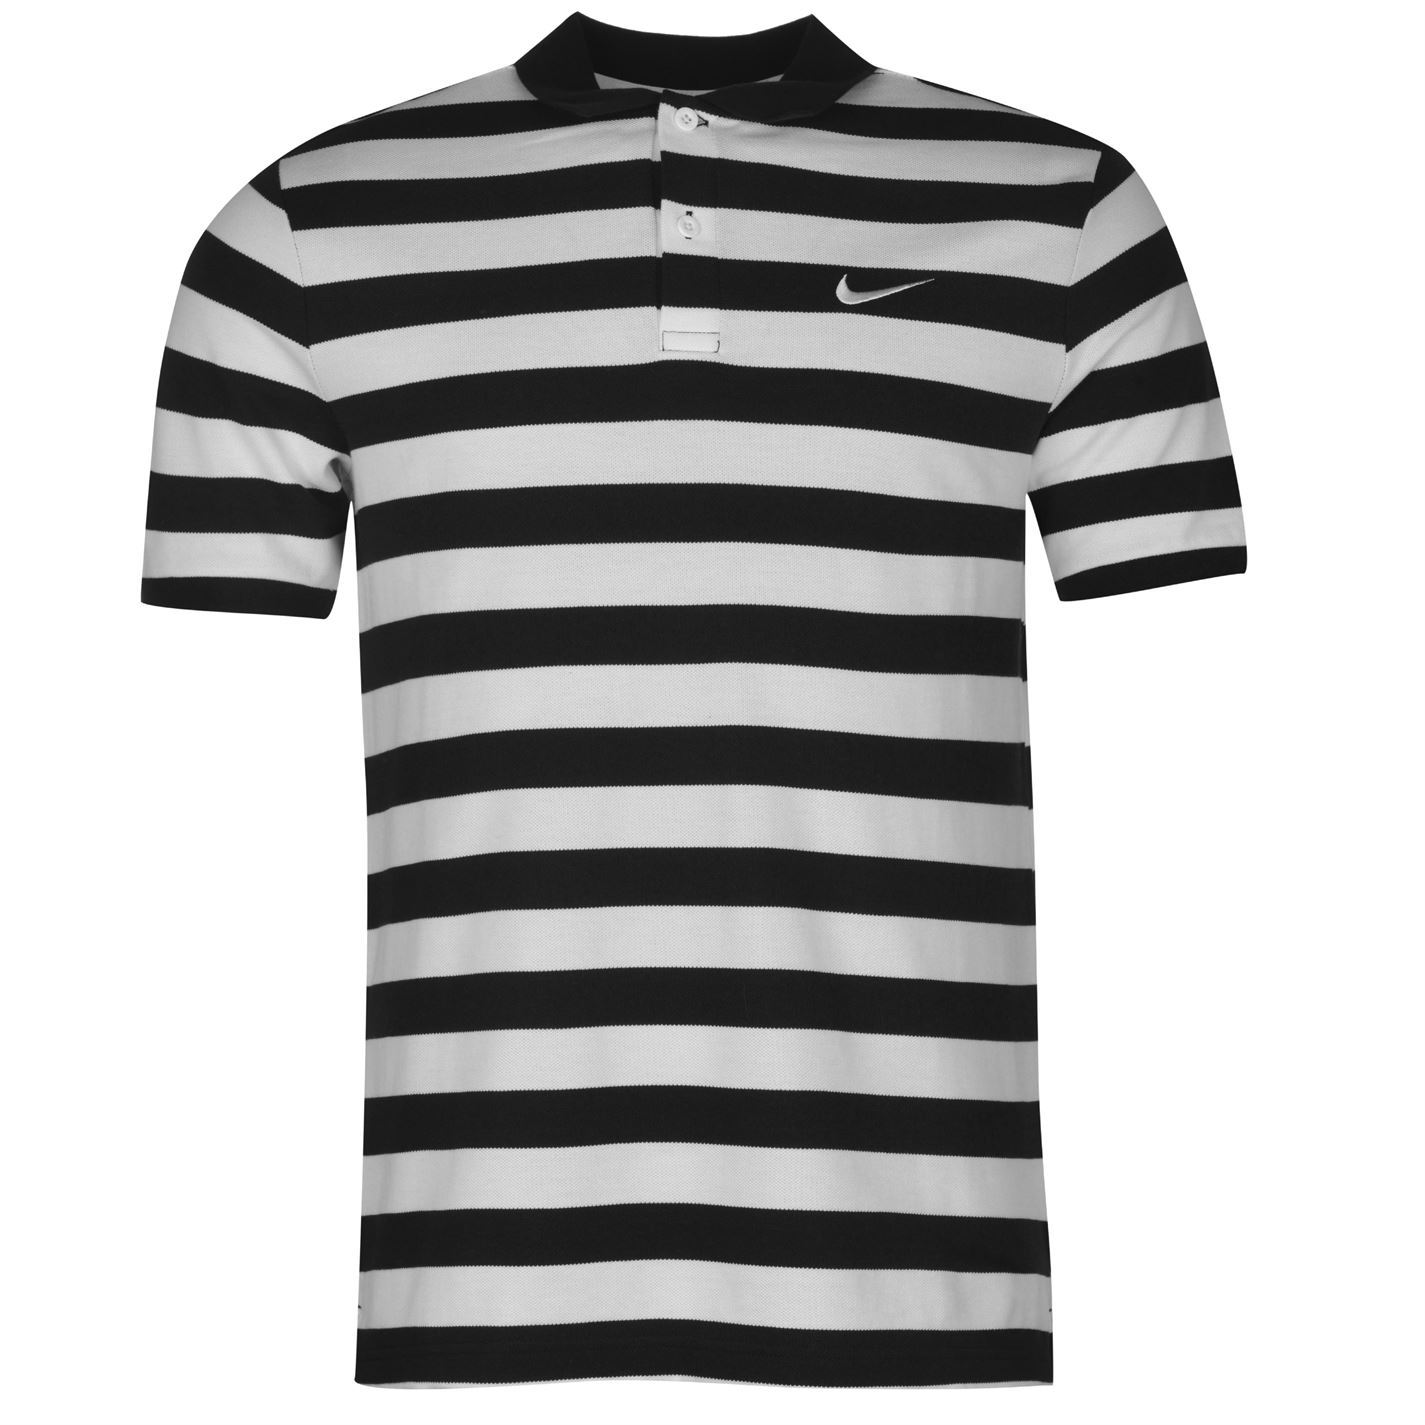 black and white golf tee shirts front back royalty free